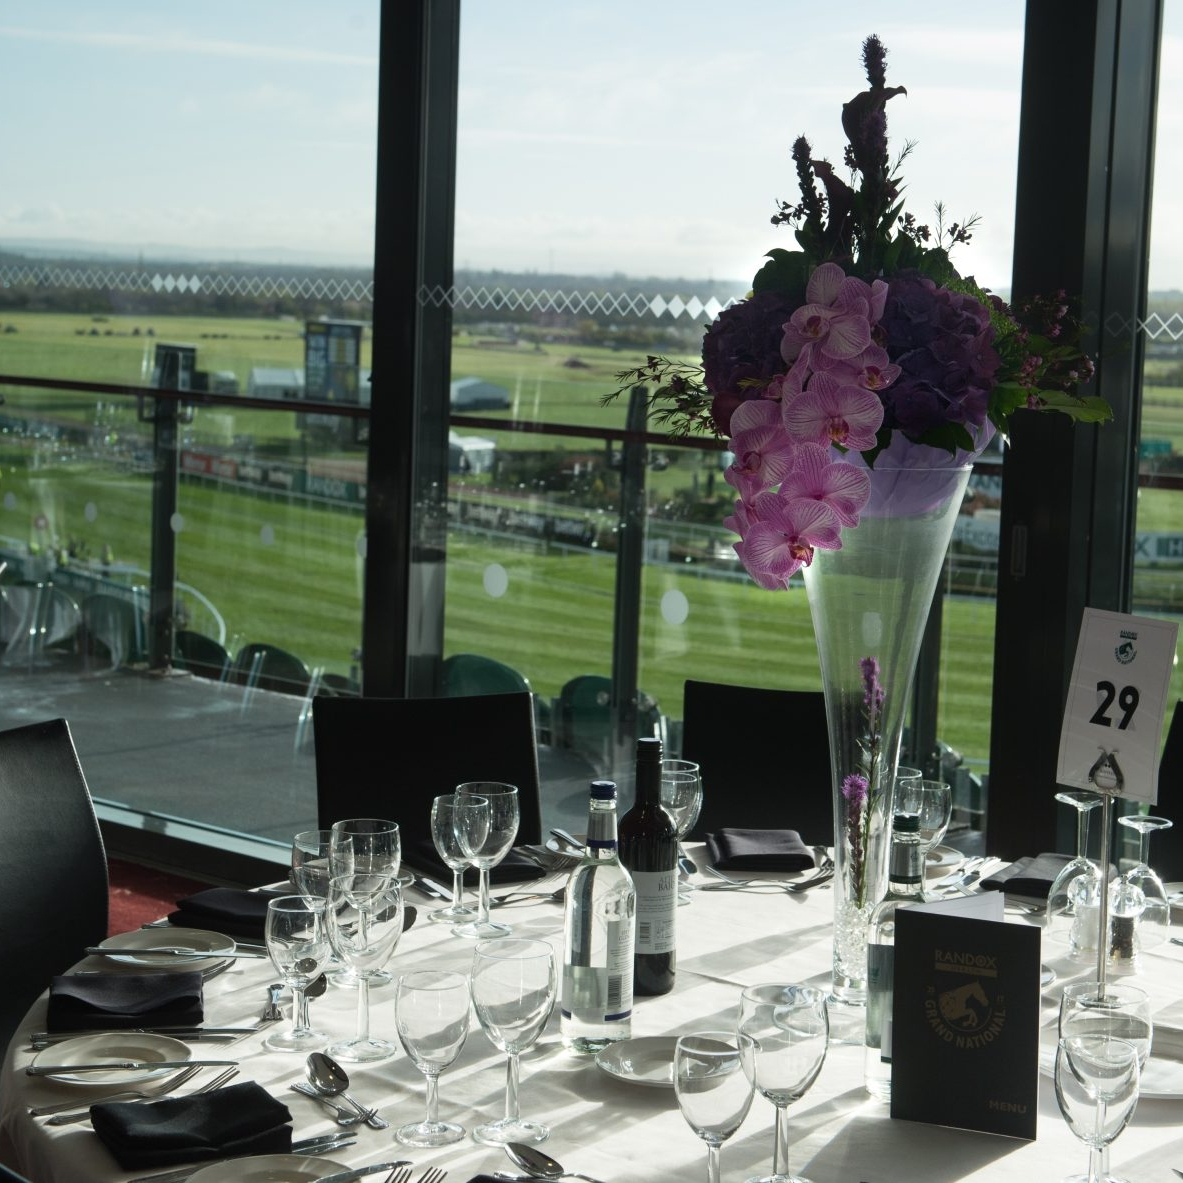 Pappilon Restaurant Hospitality - From £259 Per Person- Premier admission to the Earl of Derby grandstand- Private balcony overseeing the Grand National track- Exquisite views of the Parade Ring & Weighing Room- Delicious three-course luncheon- Afternoon tea- Complimentary bar throughout the day including a selection of wines, beers & soft drinks- Jockey Club host experience- Official race card- Car parking